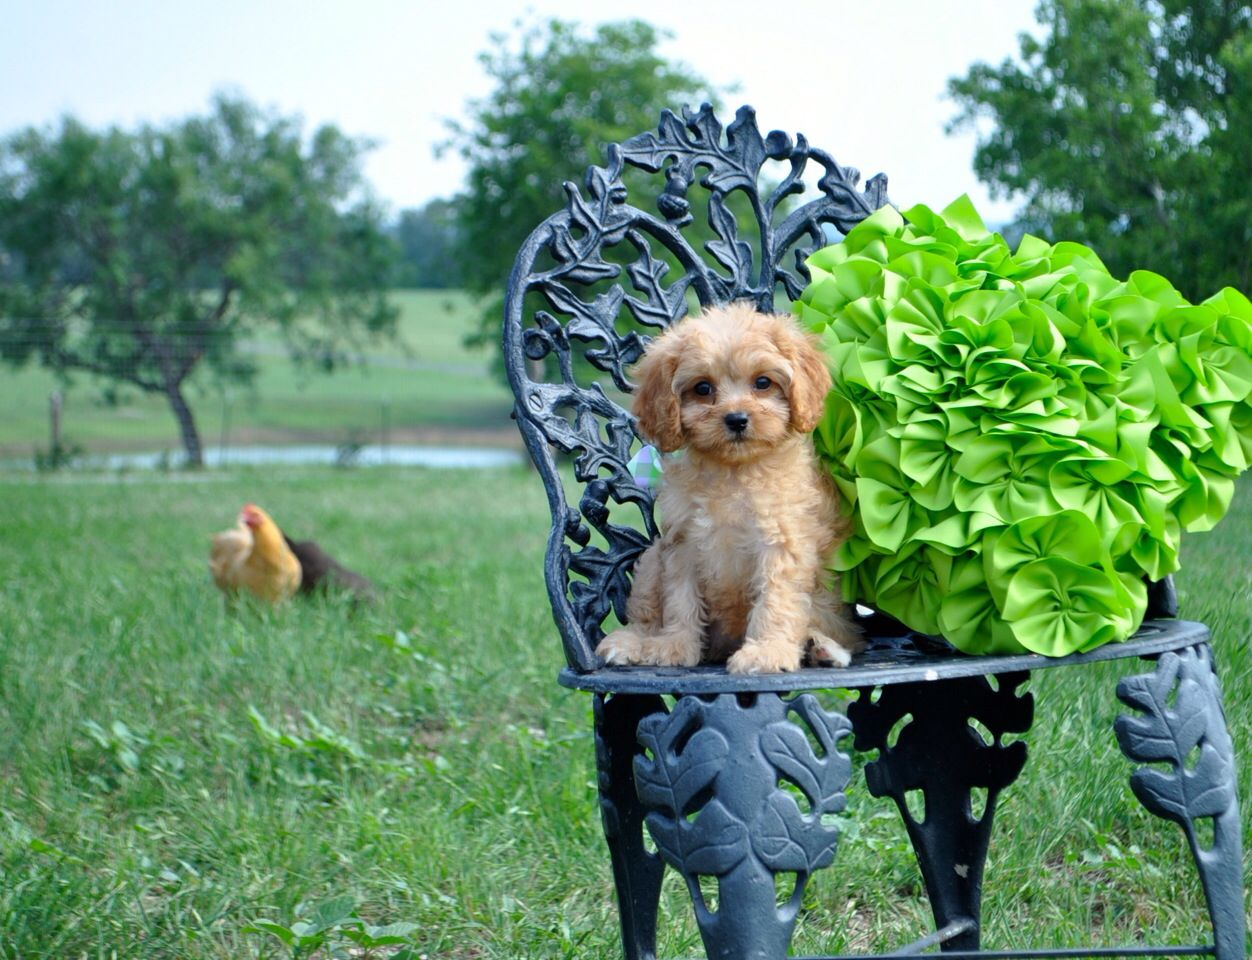 Cavapoo From Almostfamousdog Com Cavalier X Poodle Our Almost